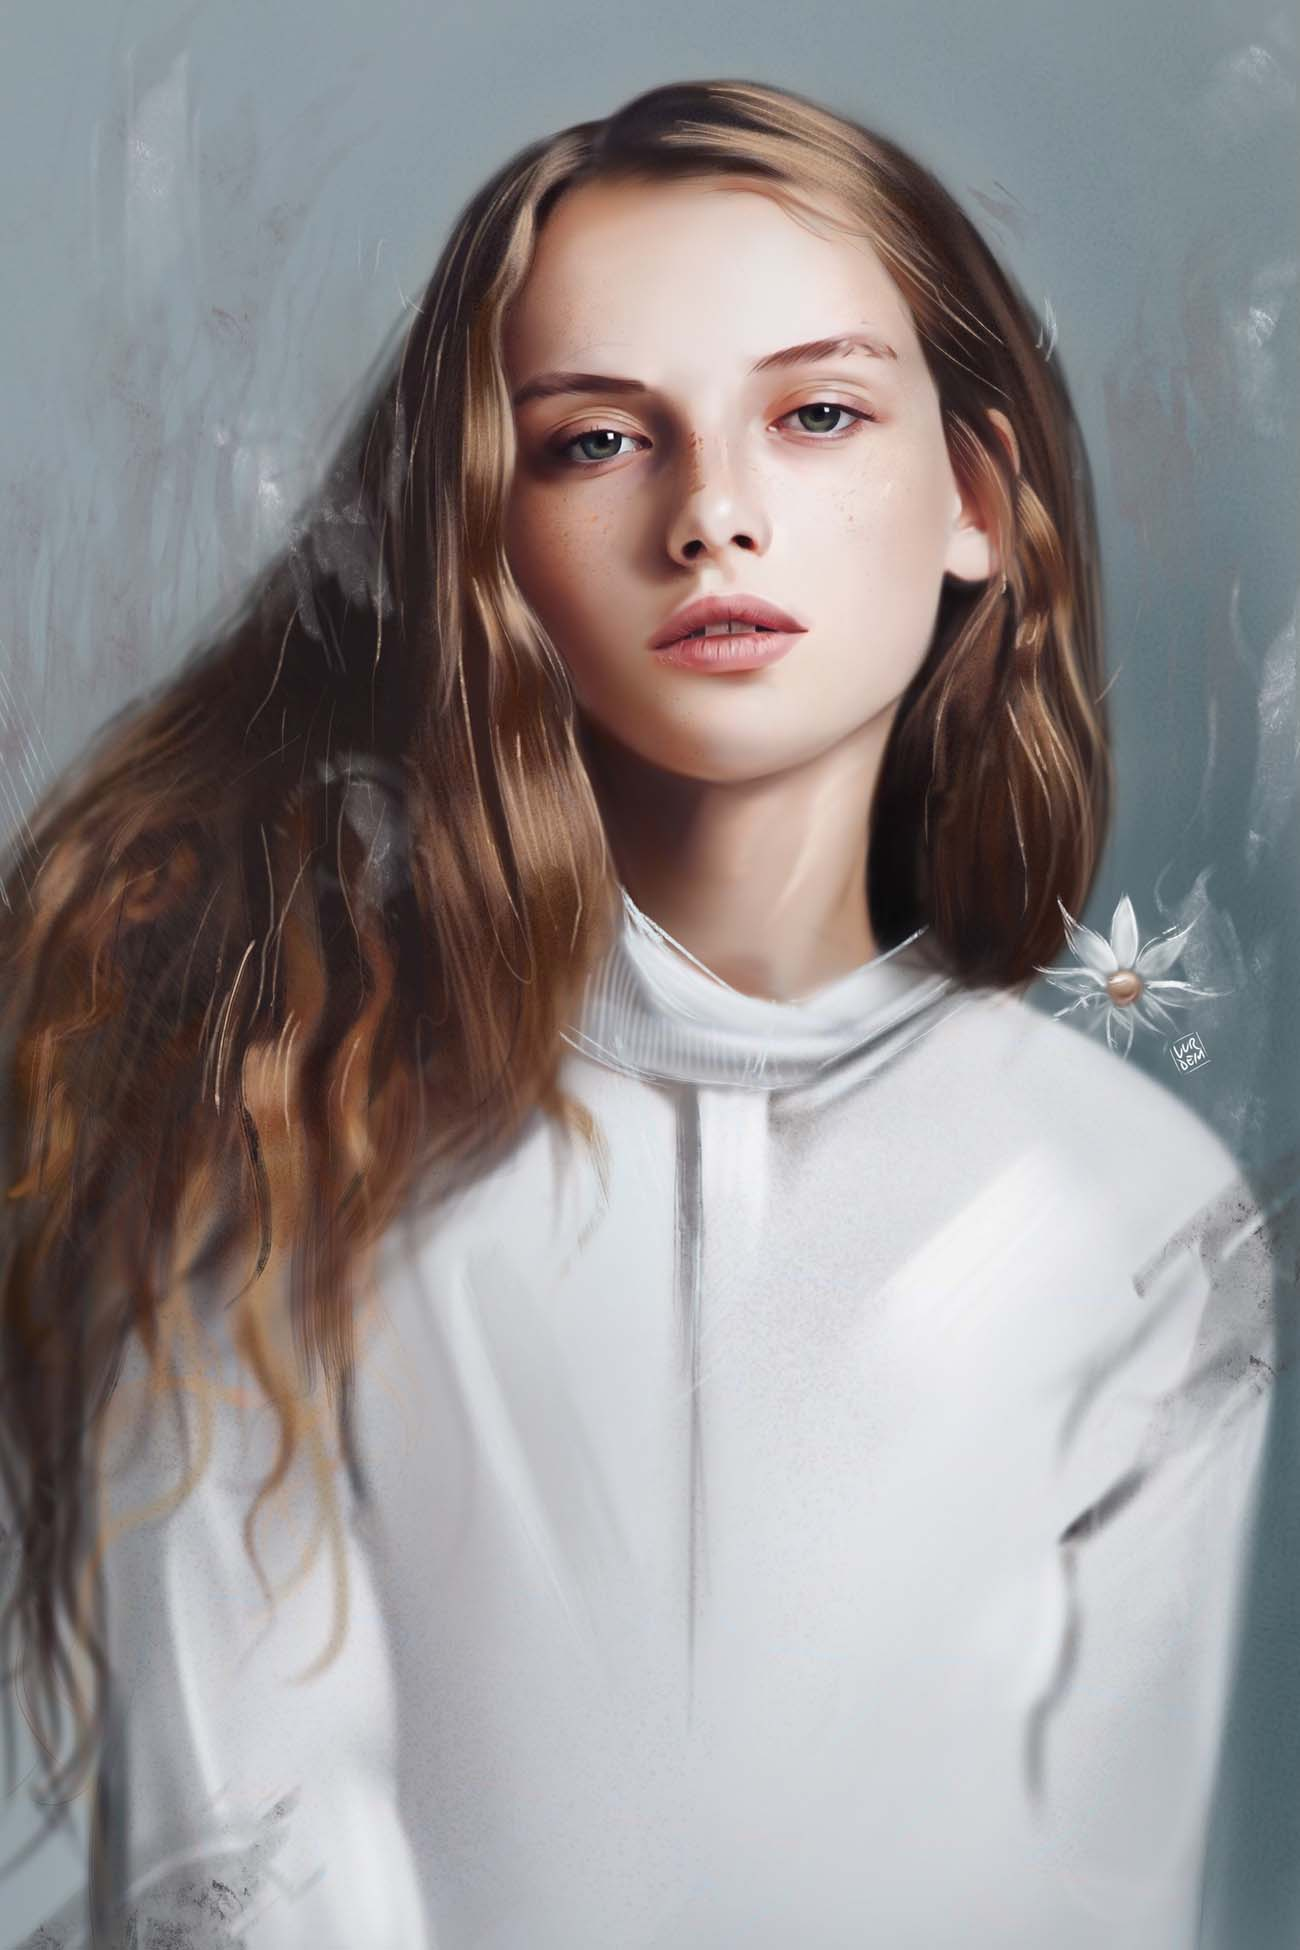 Yaşar Vurdem | Paintable.cc Digital Painting Inspiration - Learn the Art of Digital Painting! #digitalpainting #digitalart